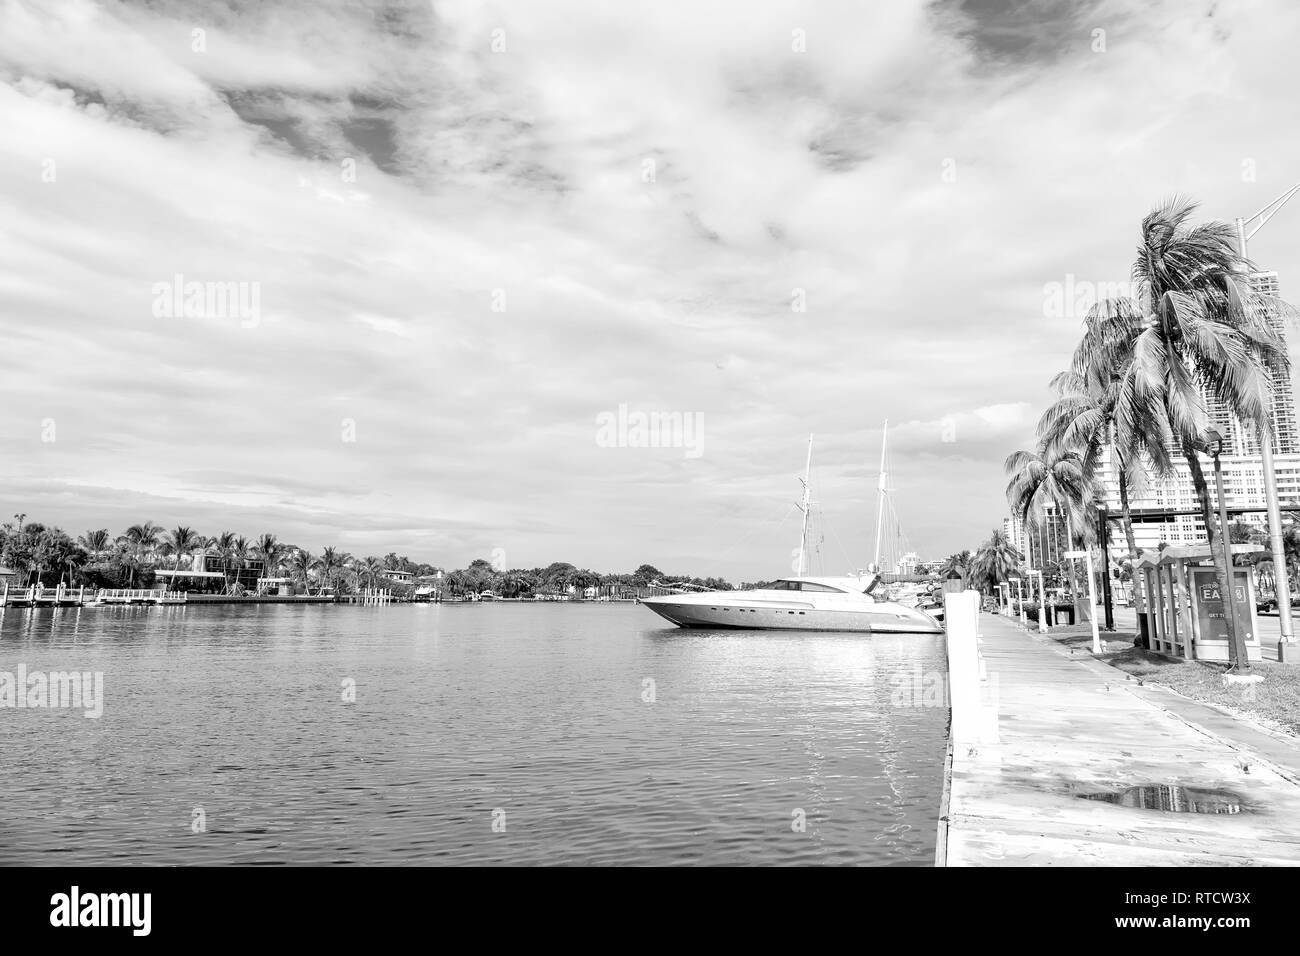 Miami beach or south beach. yachts and luxury sail boats parked at blue sea dock or bay pier green palm trees and buildings on sunny day on cloudy sky background. Summer vacation and travelling - Stock Image